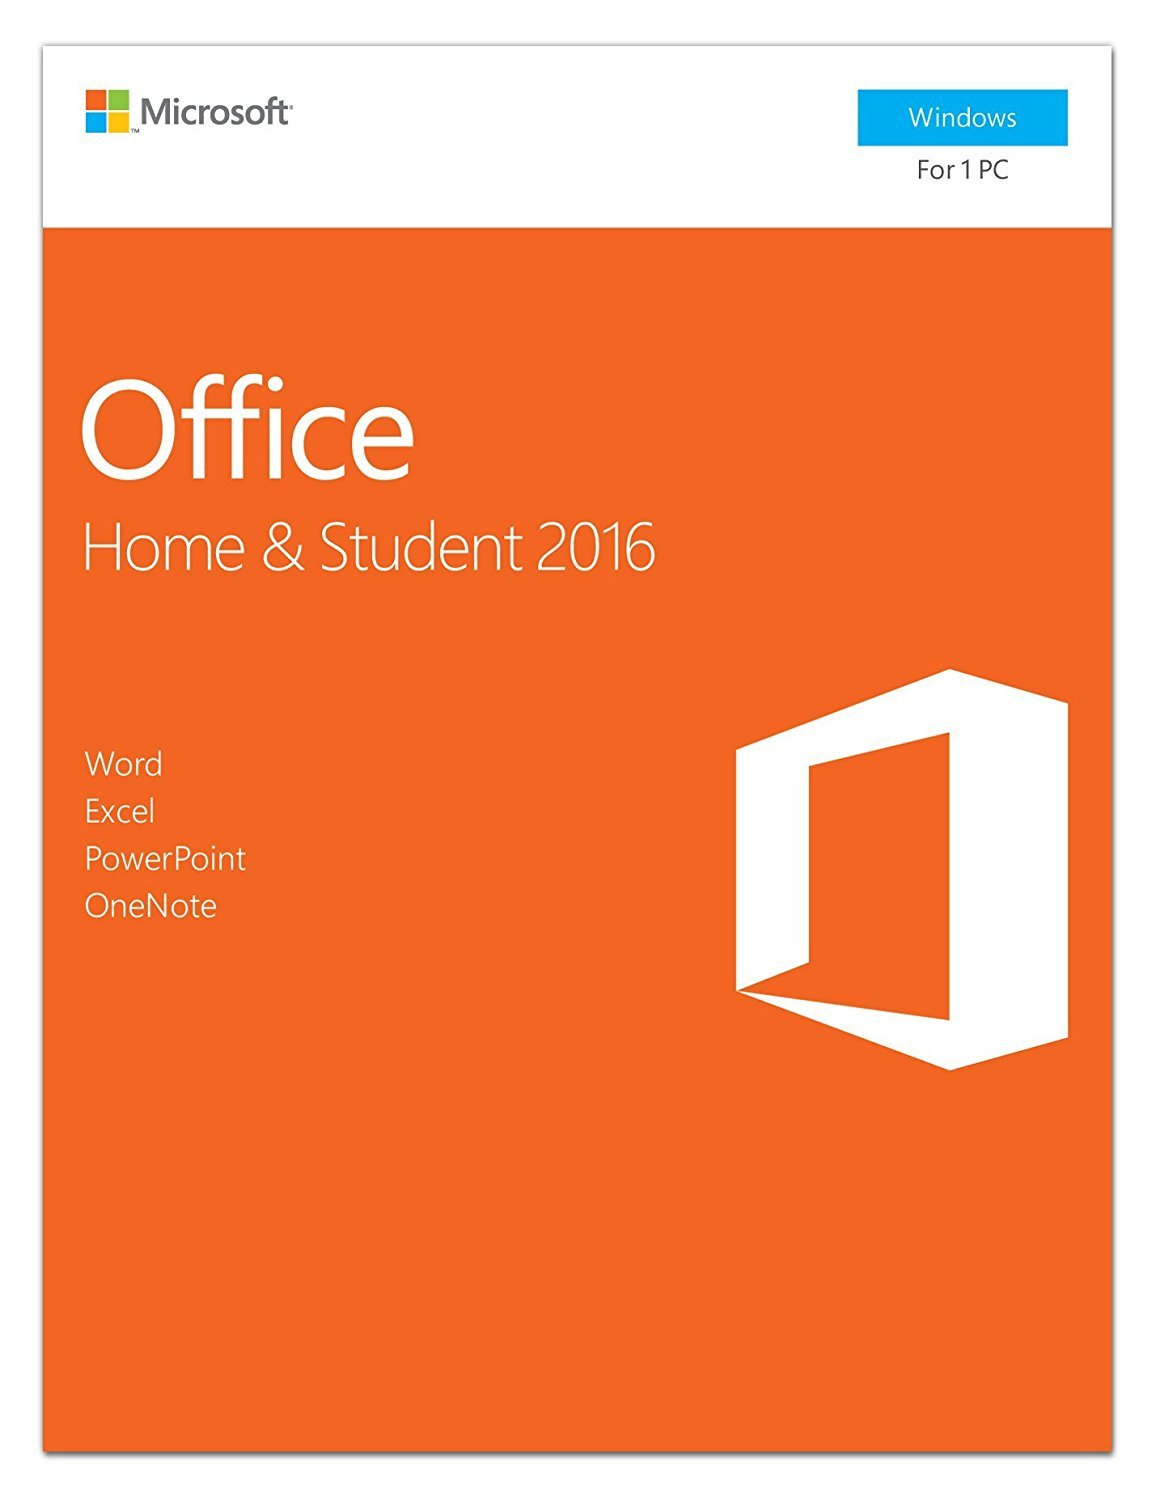 Office 2016 Home & Student (Win) USA Retail